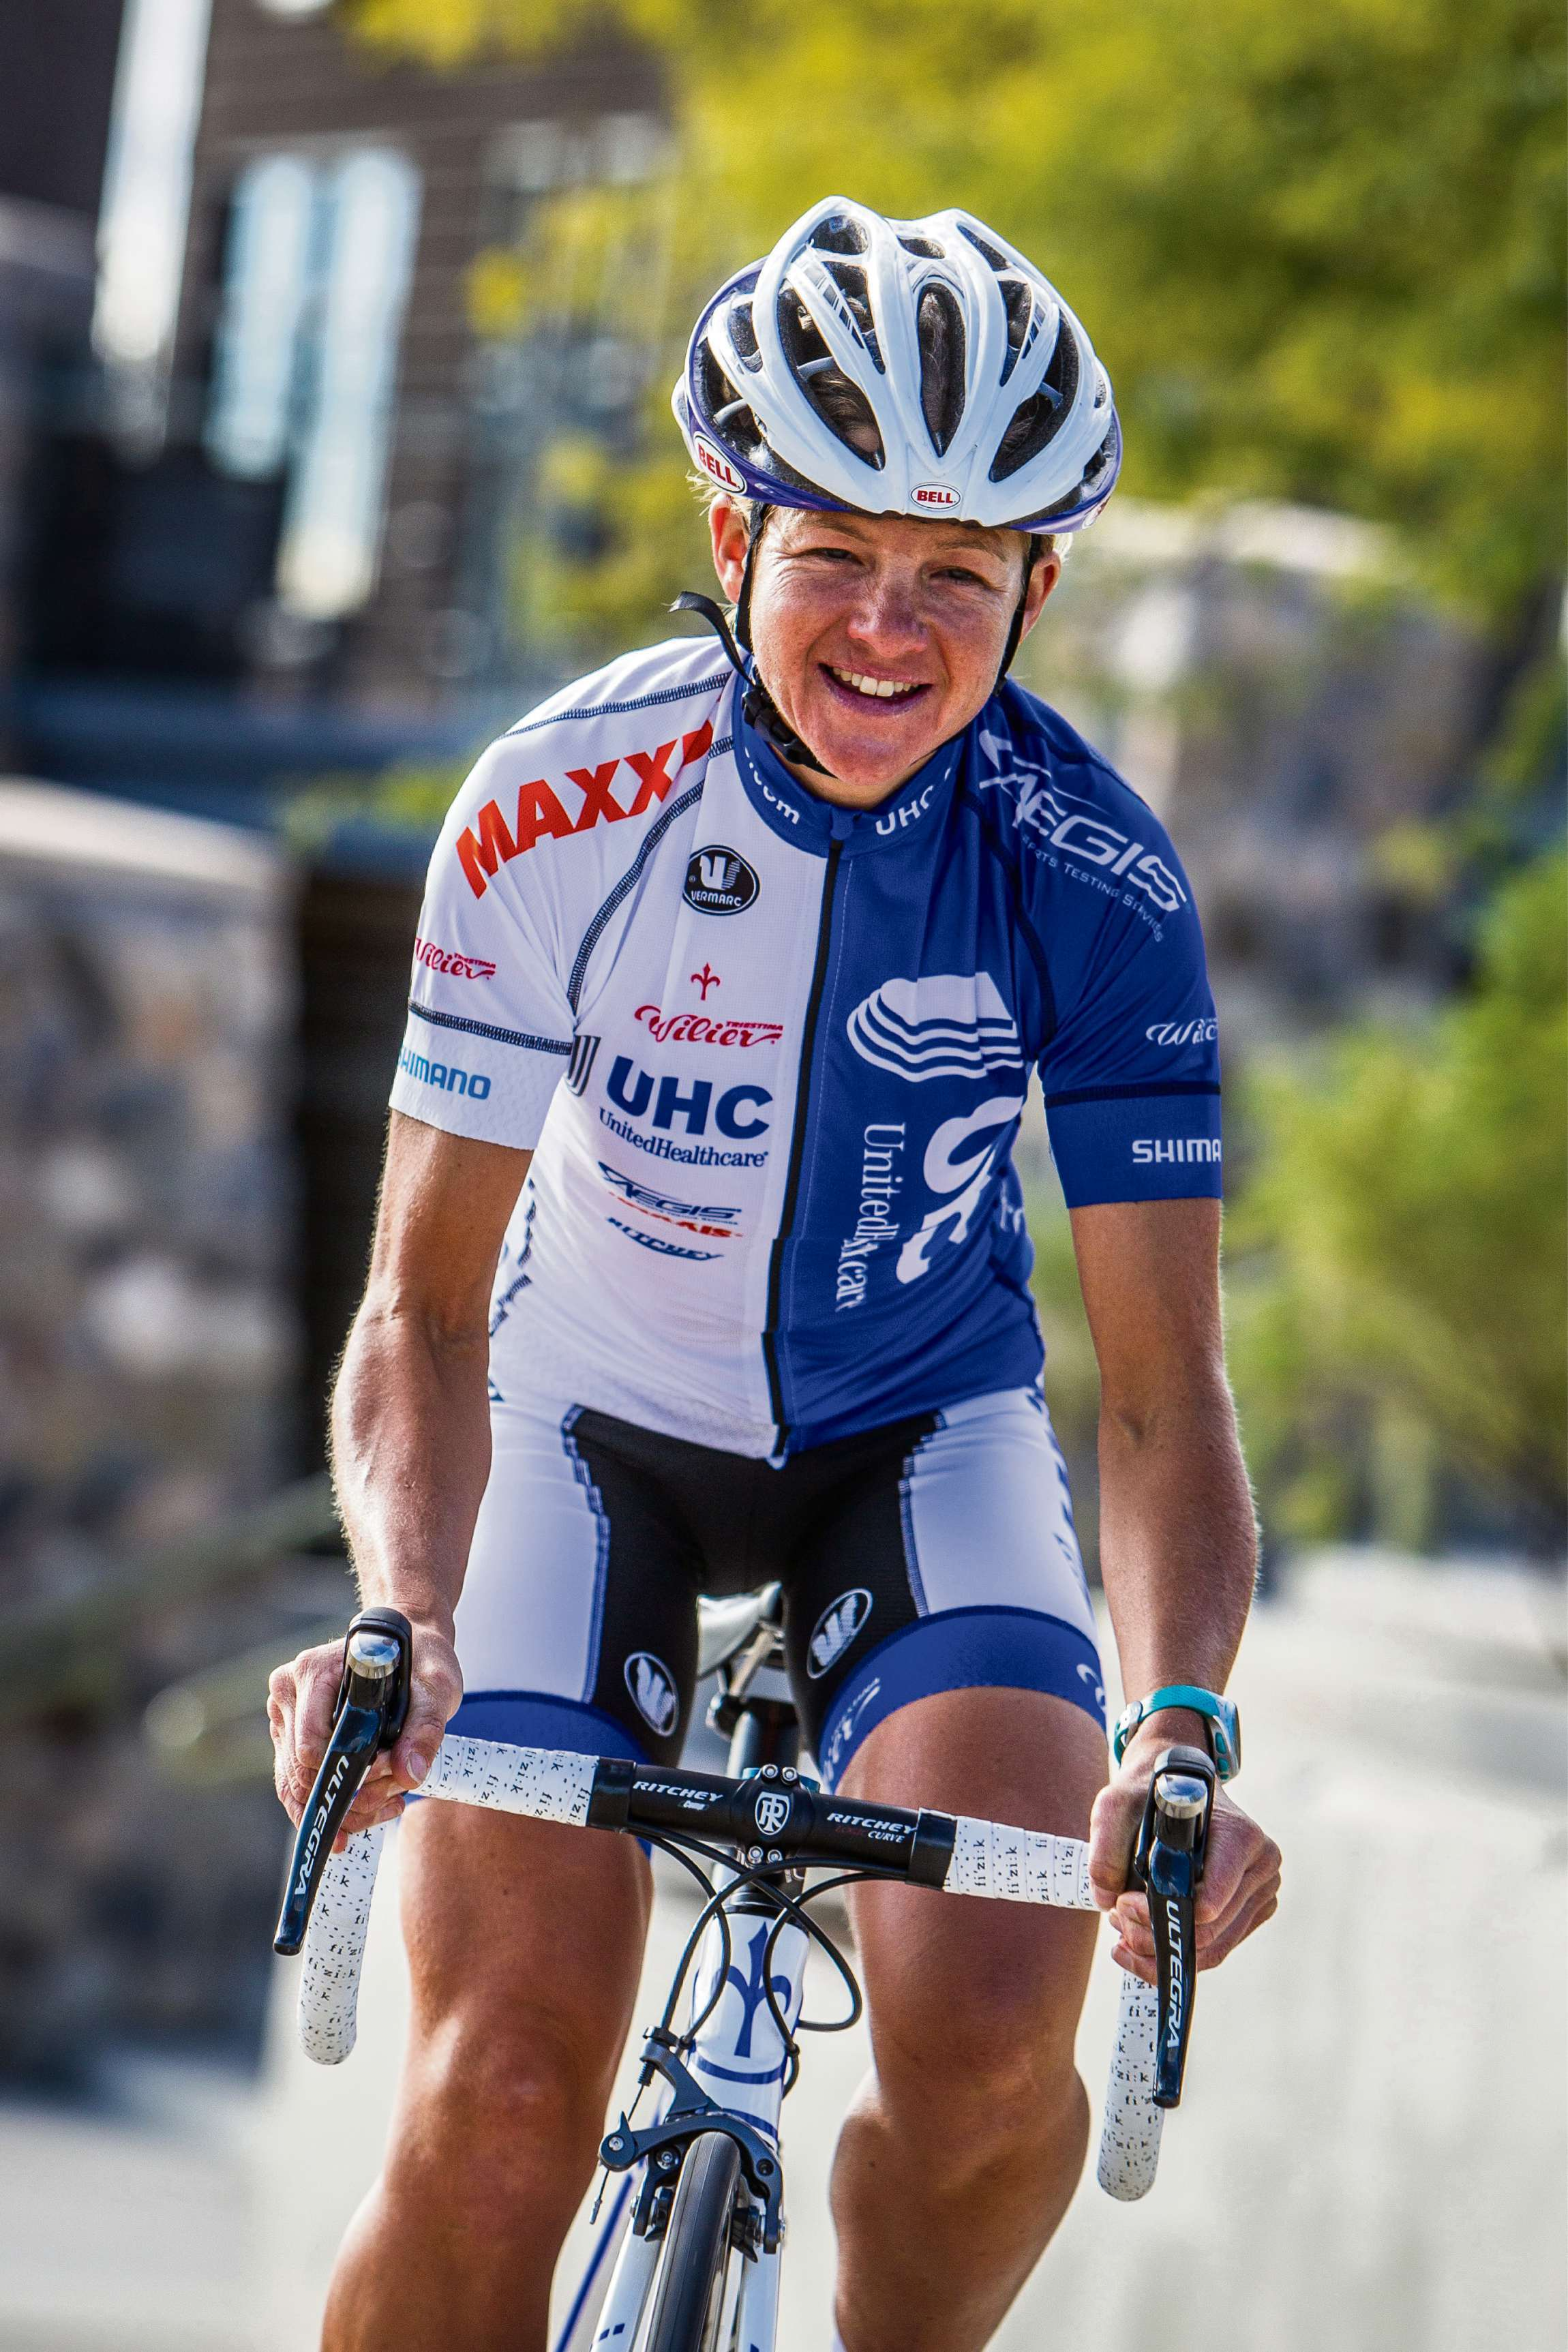 Wilts and Gloucestershire Standard: Sharon Laws of the UnitedHealthcare Pro Cycling Team